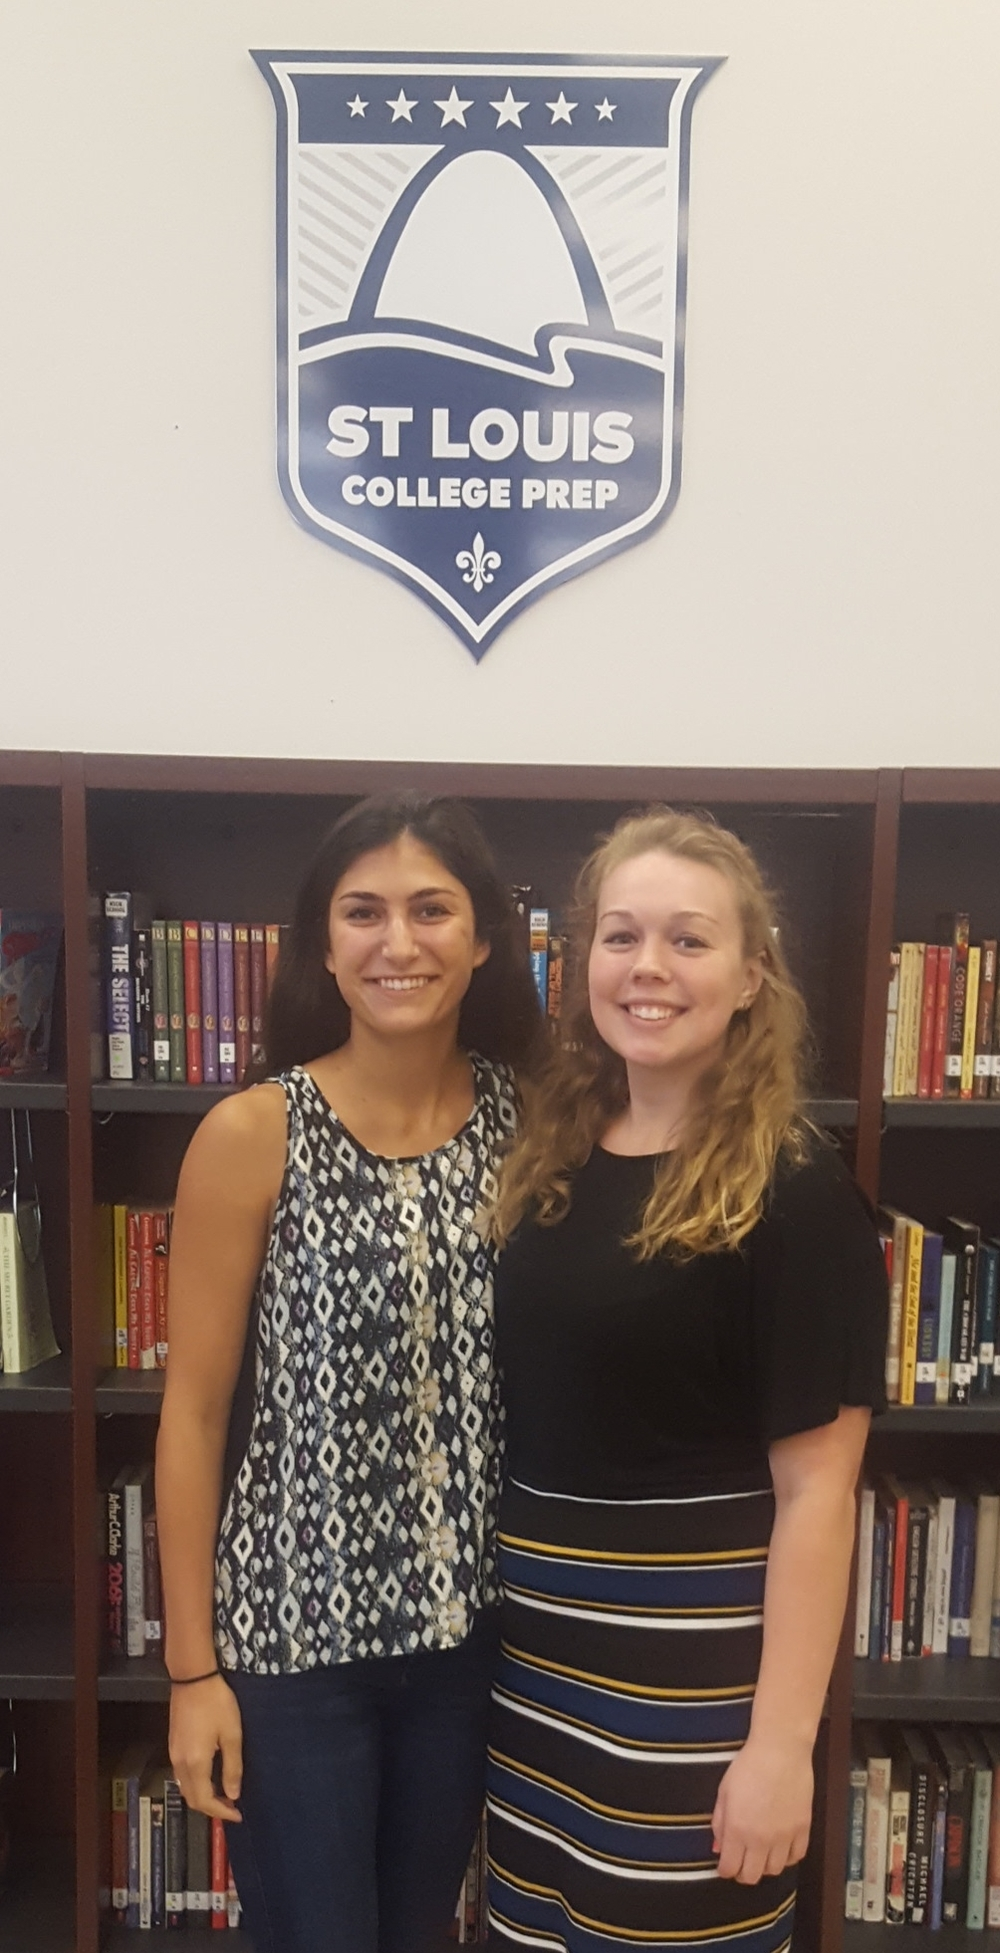 Washington University interns Claire Savage and Leah Bahmbri have spent the past 10 weeks serving at St. Louis College Prep.